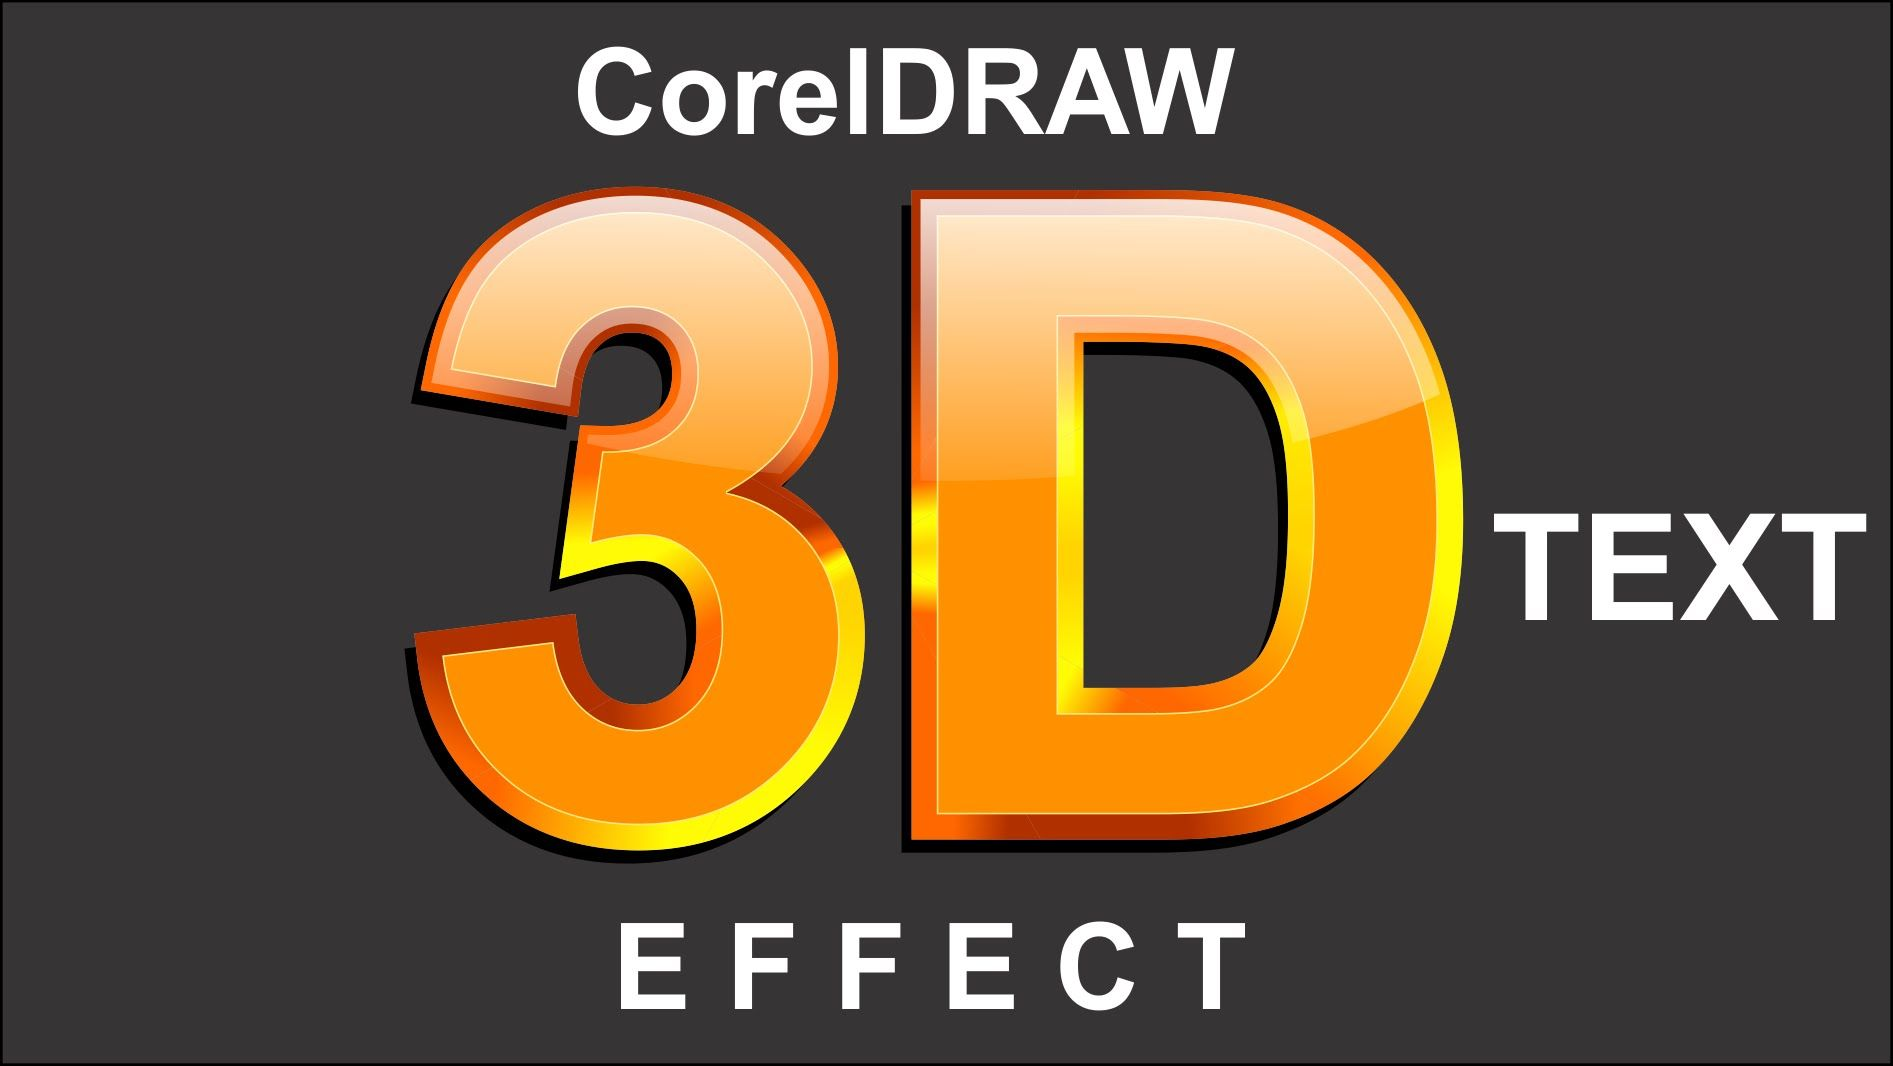 Corel draw vs photoshop for t shirt design - Coreldraw X8 3d Text Design Effects Corel Draw Font Tutorial